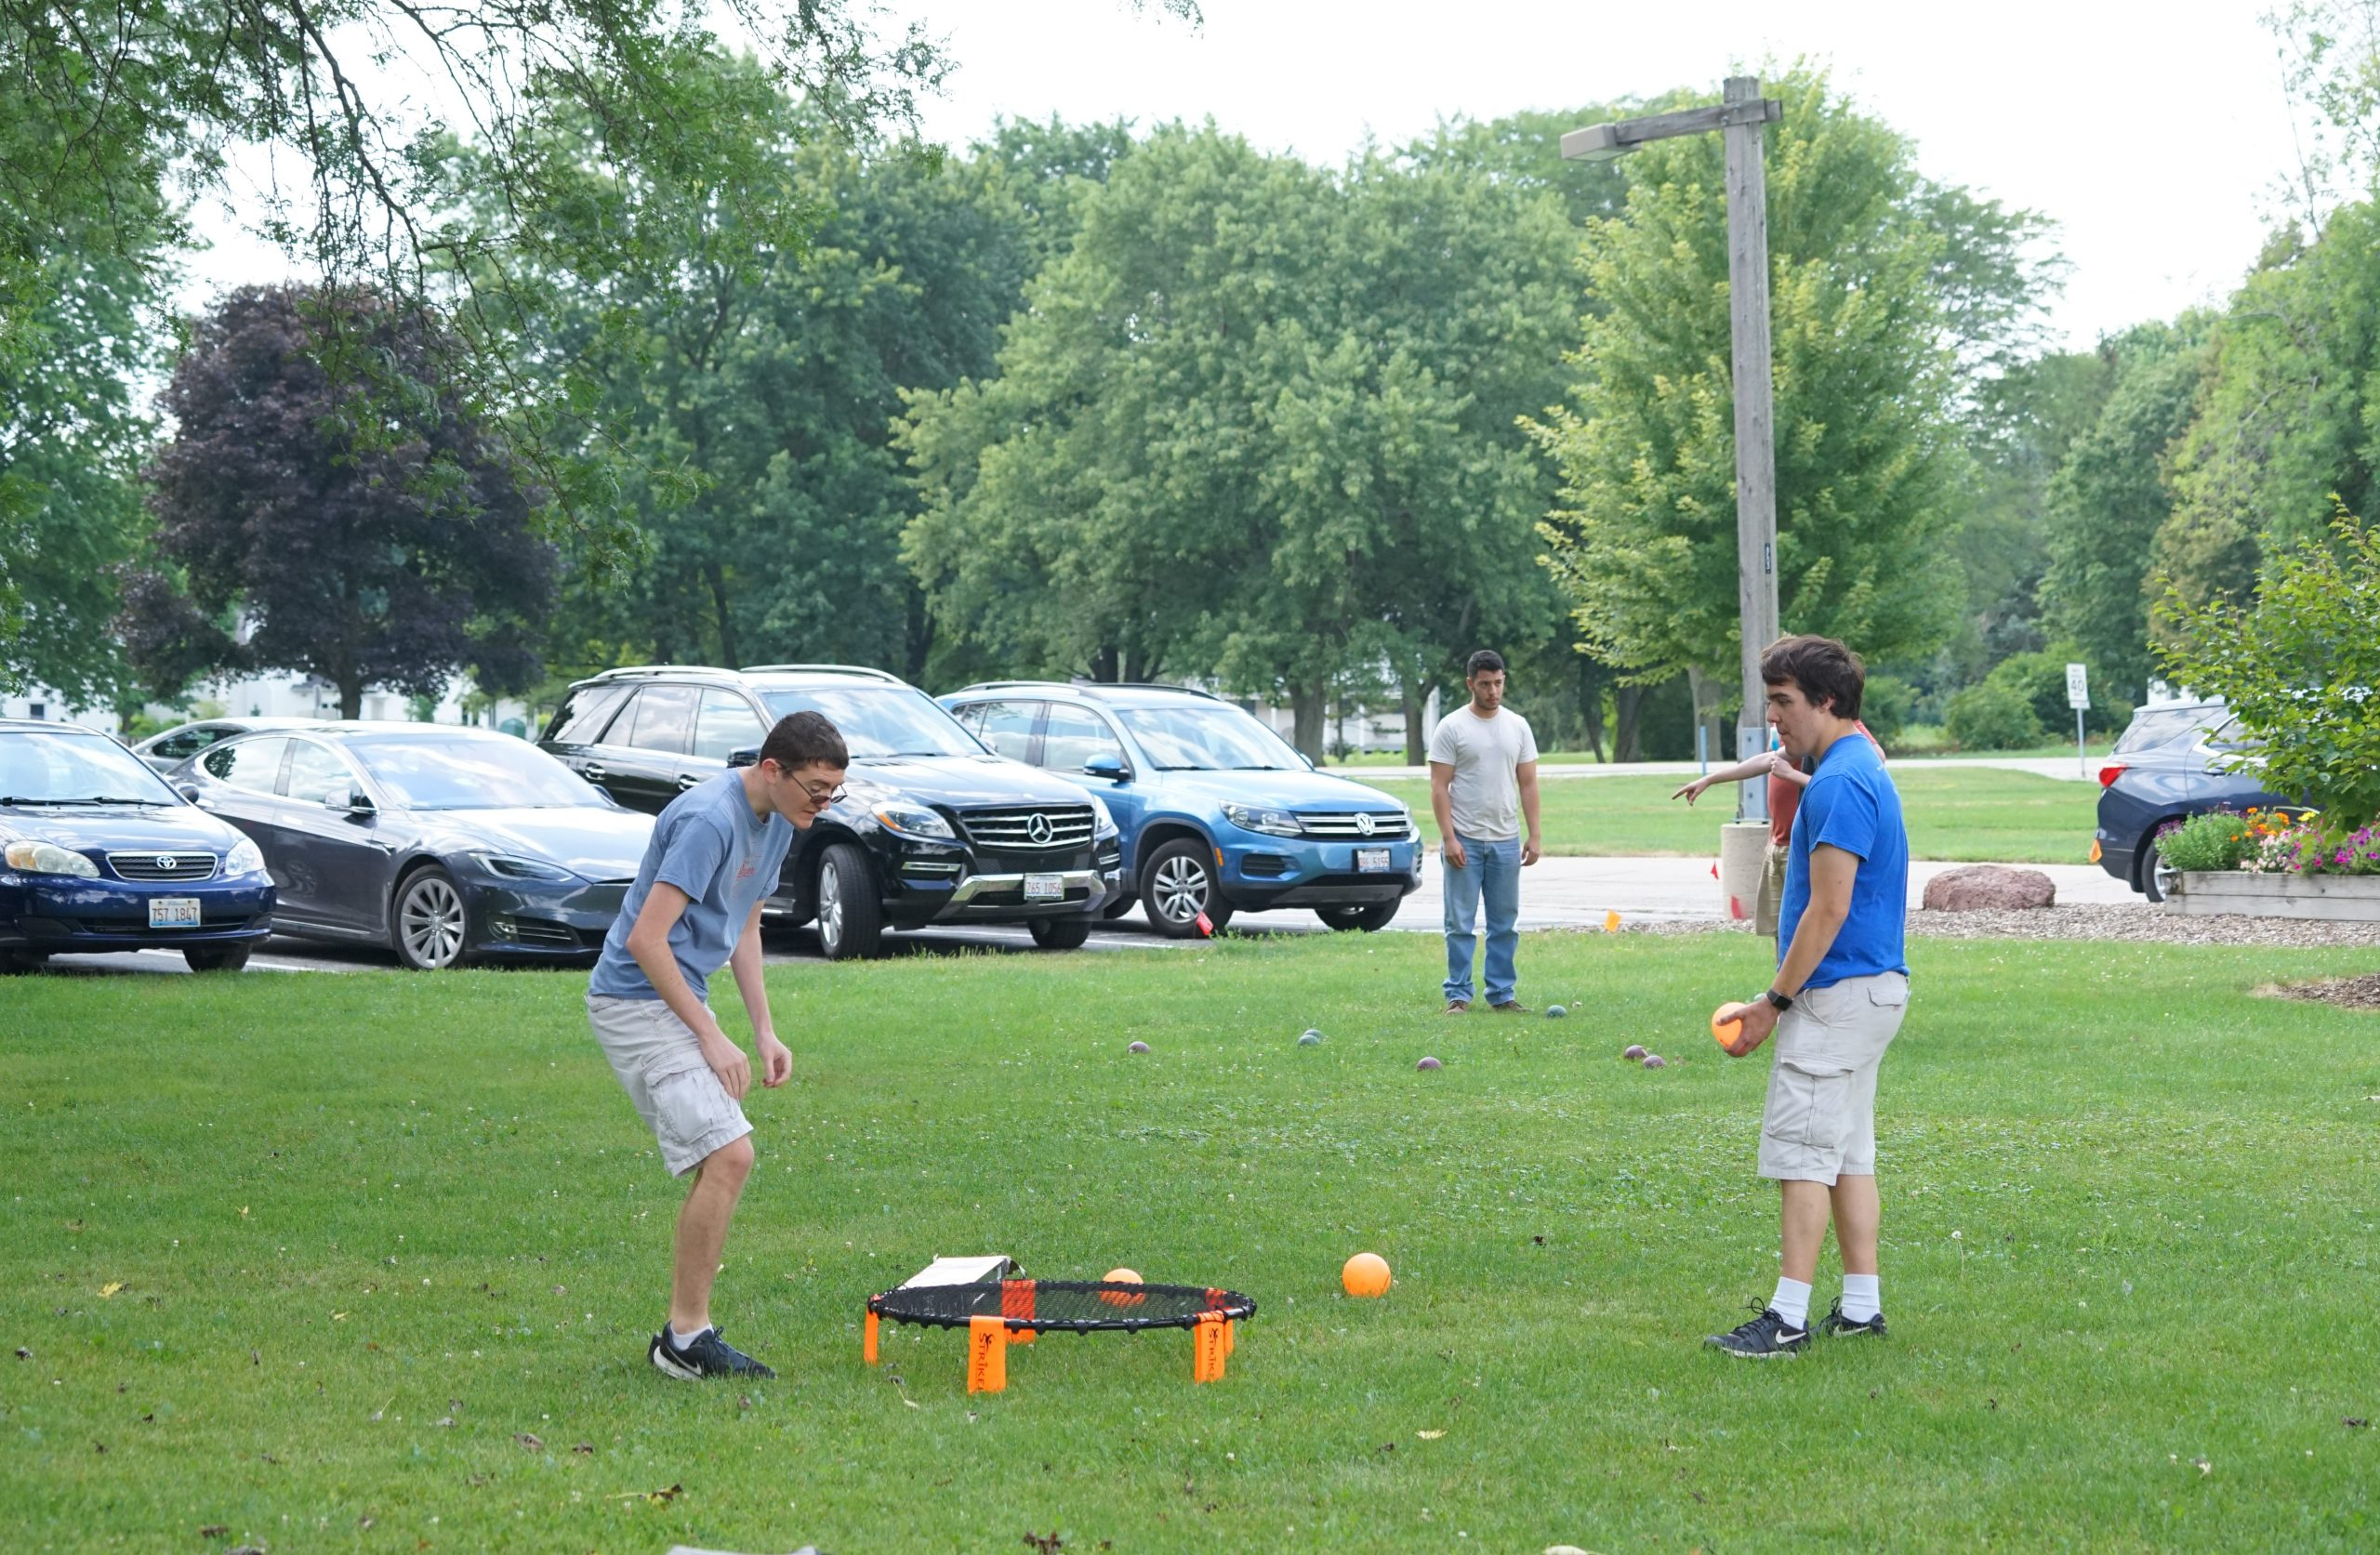 Let's play ball! summer, lab life, people Photo: Leticia Shaddix